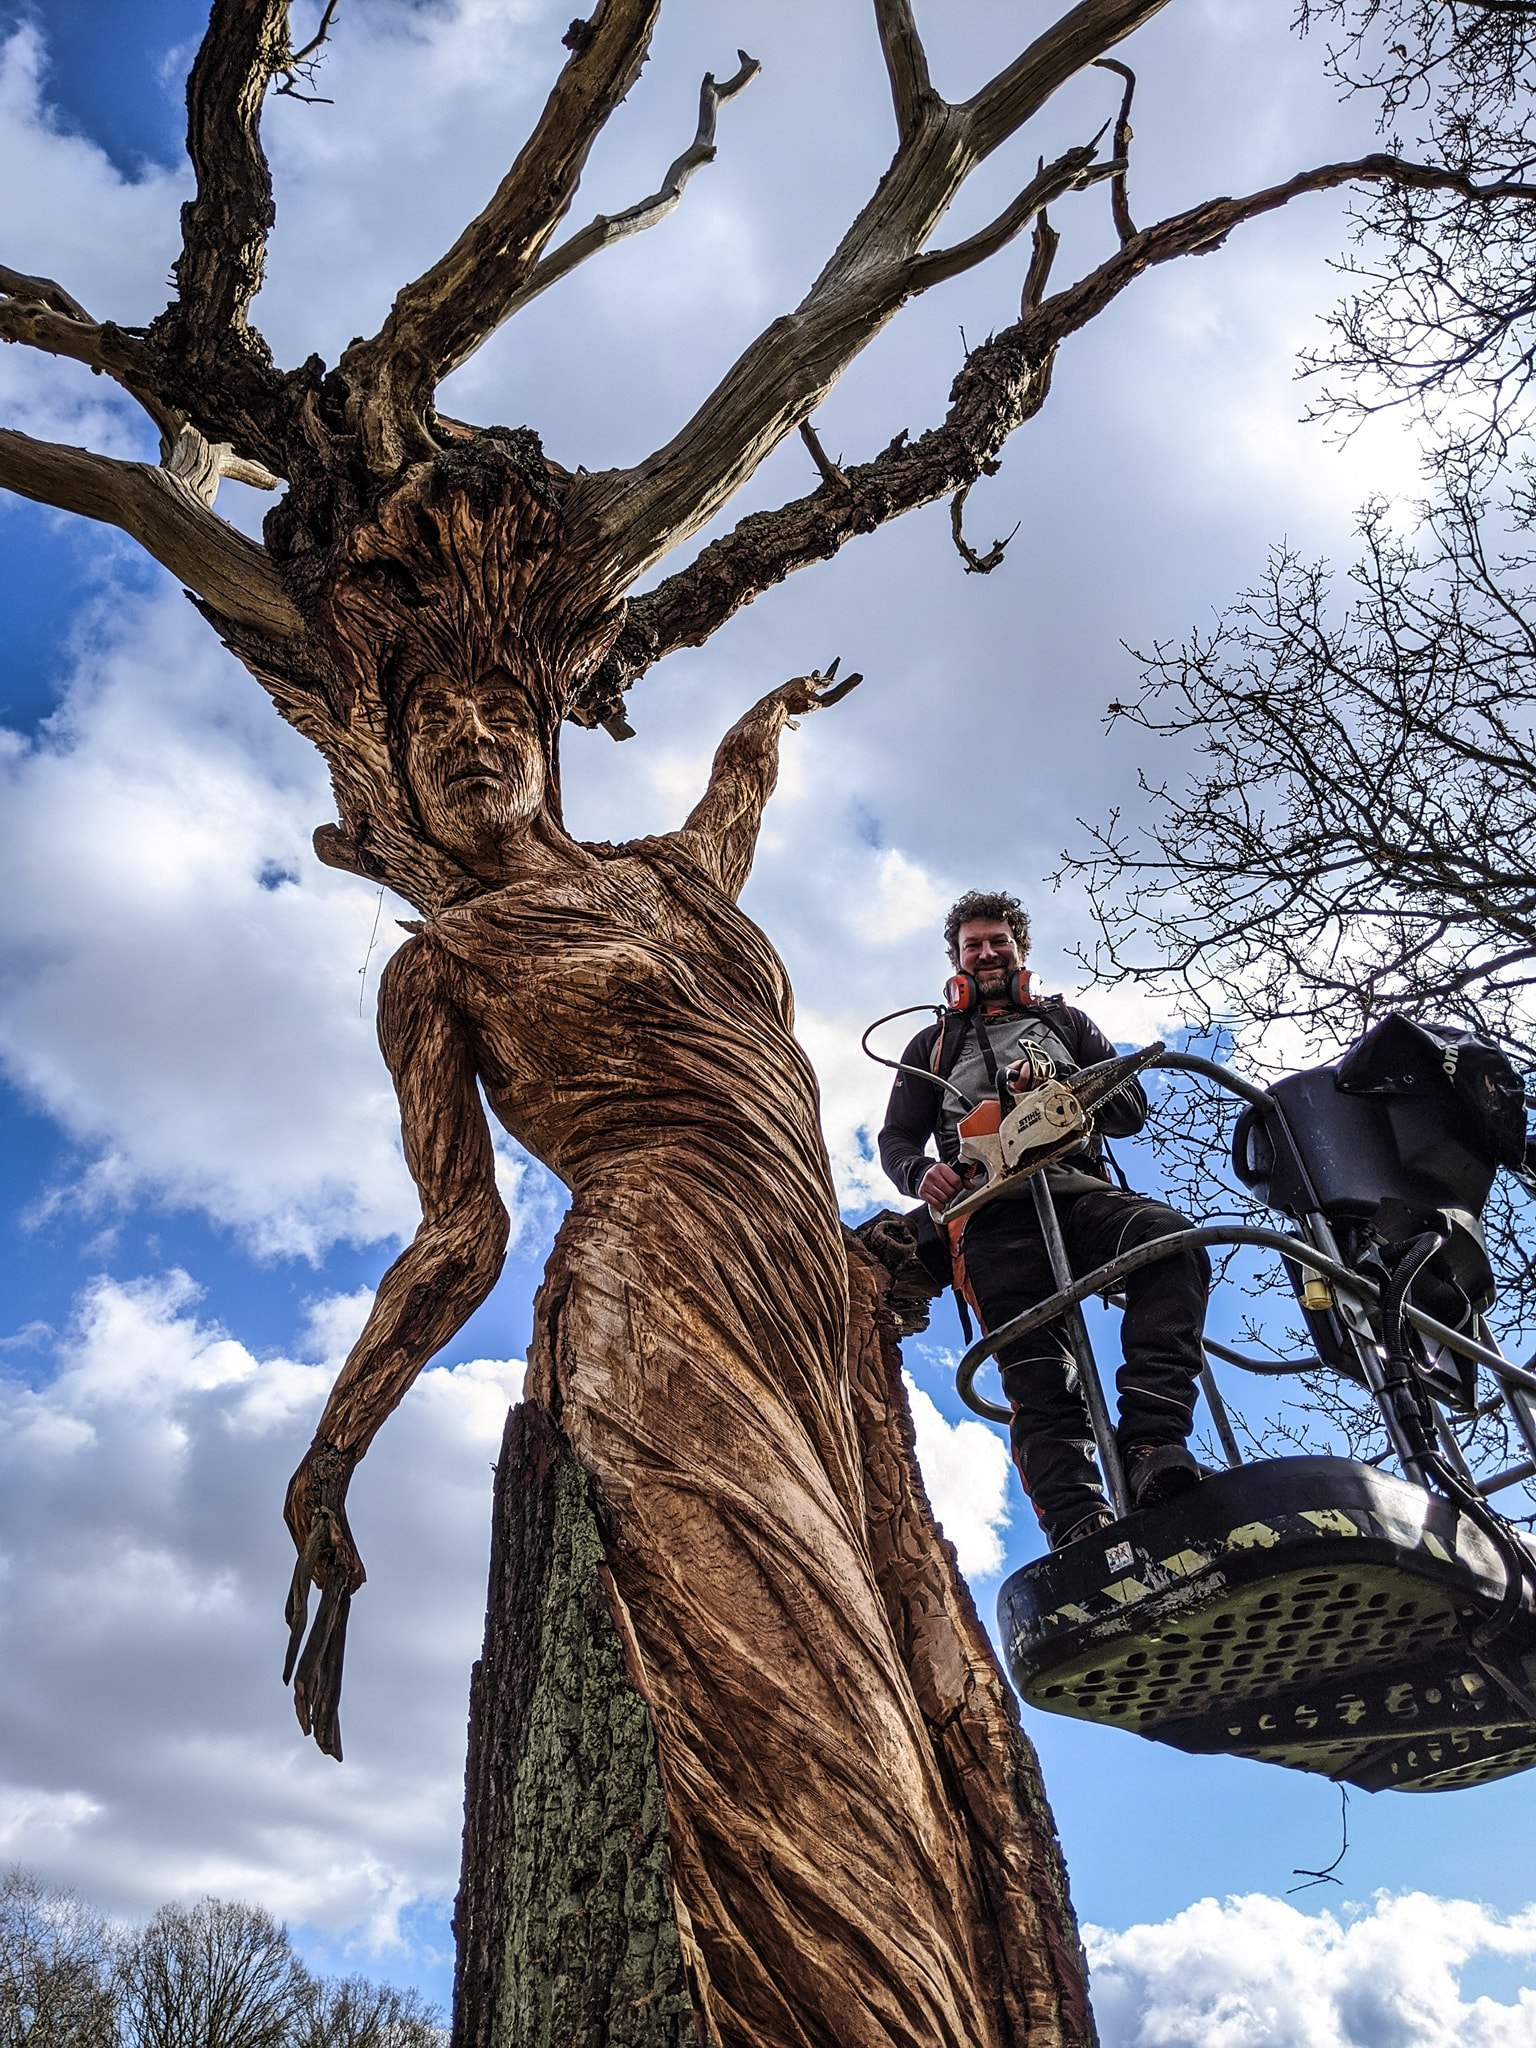 simon o rourke stands in a cherry picker next to the oak maiden sculpture he created in a dead oak tree. sculptures of 2020.